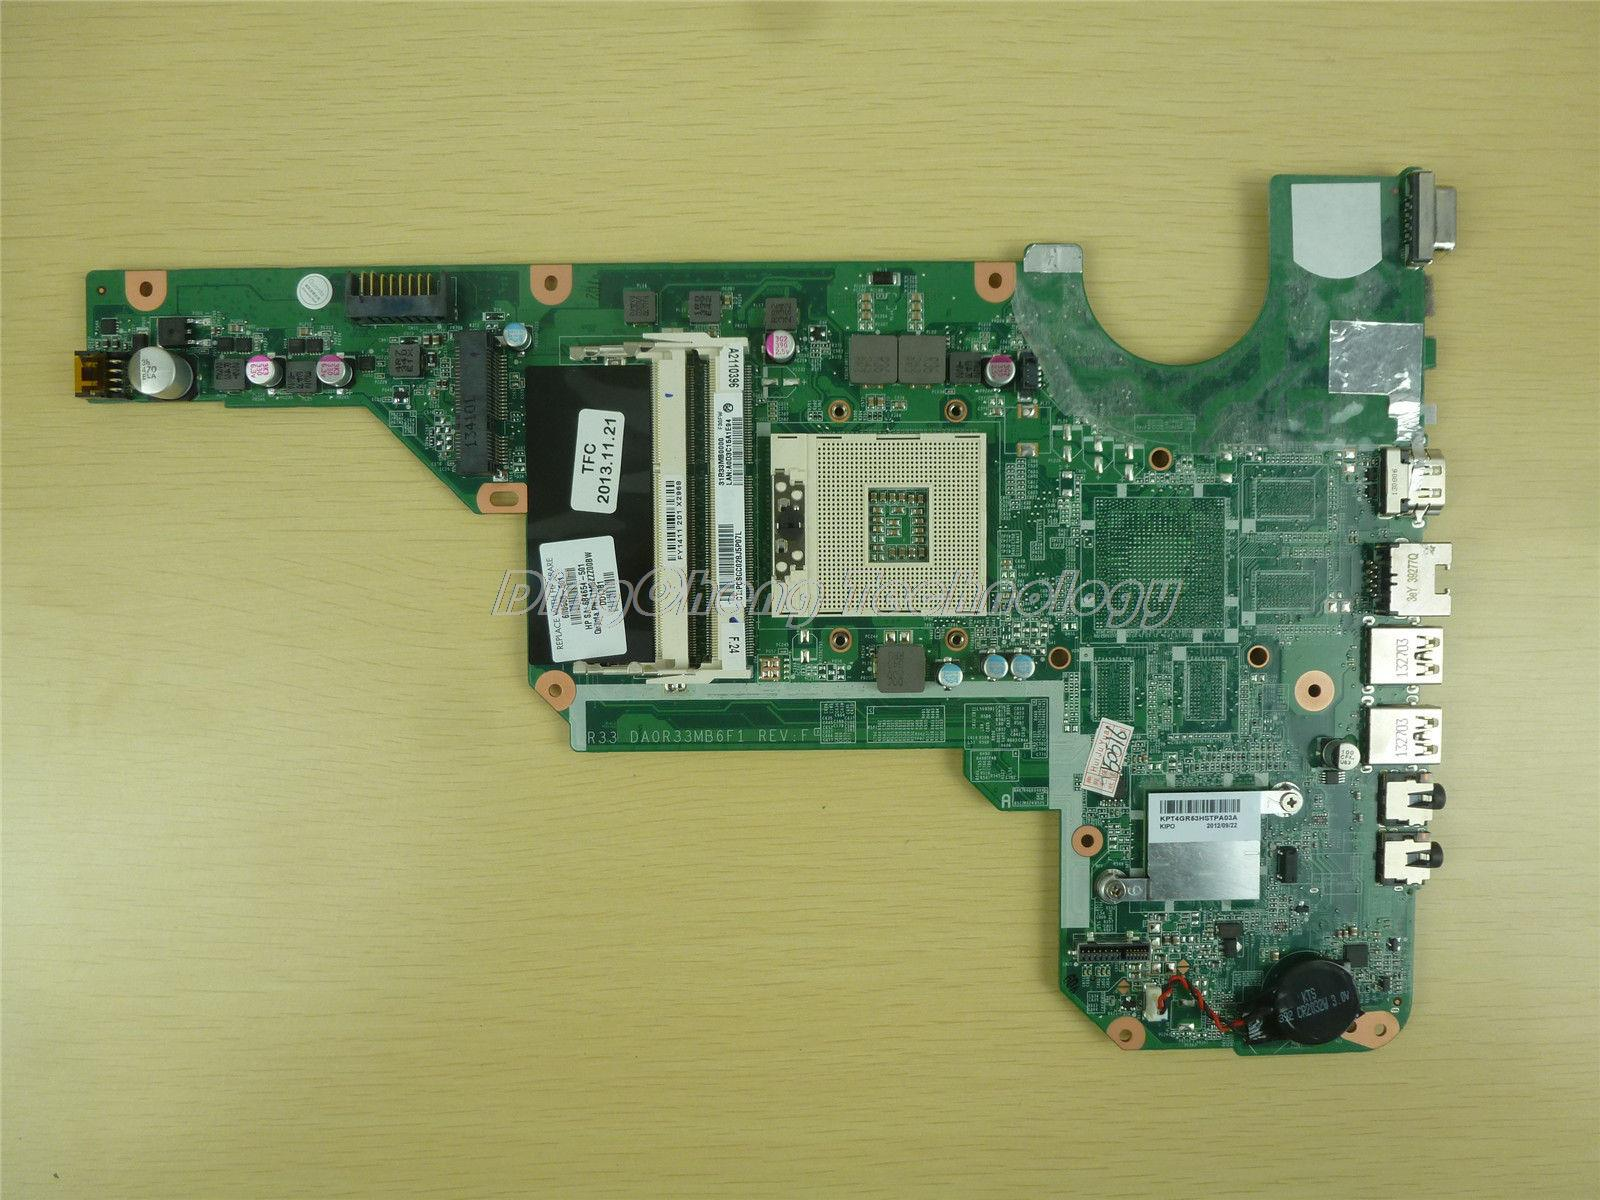 SHELI laptop Motherboard For HP G4 G6 G7 680568-001 DA0R33MB6F1 REV:F integrated graphics card 100% fully tested